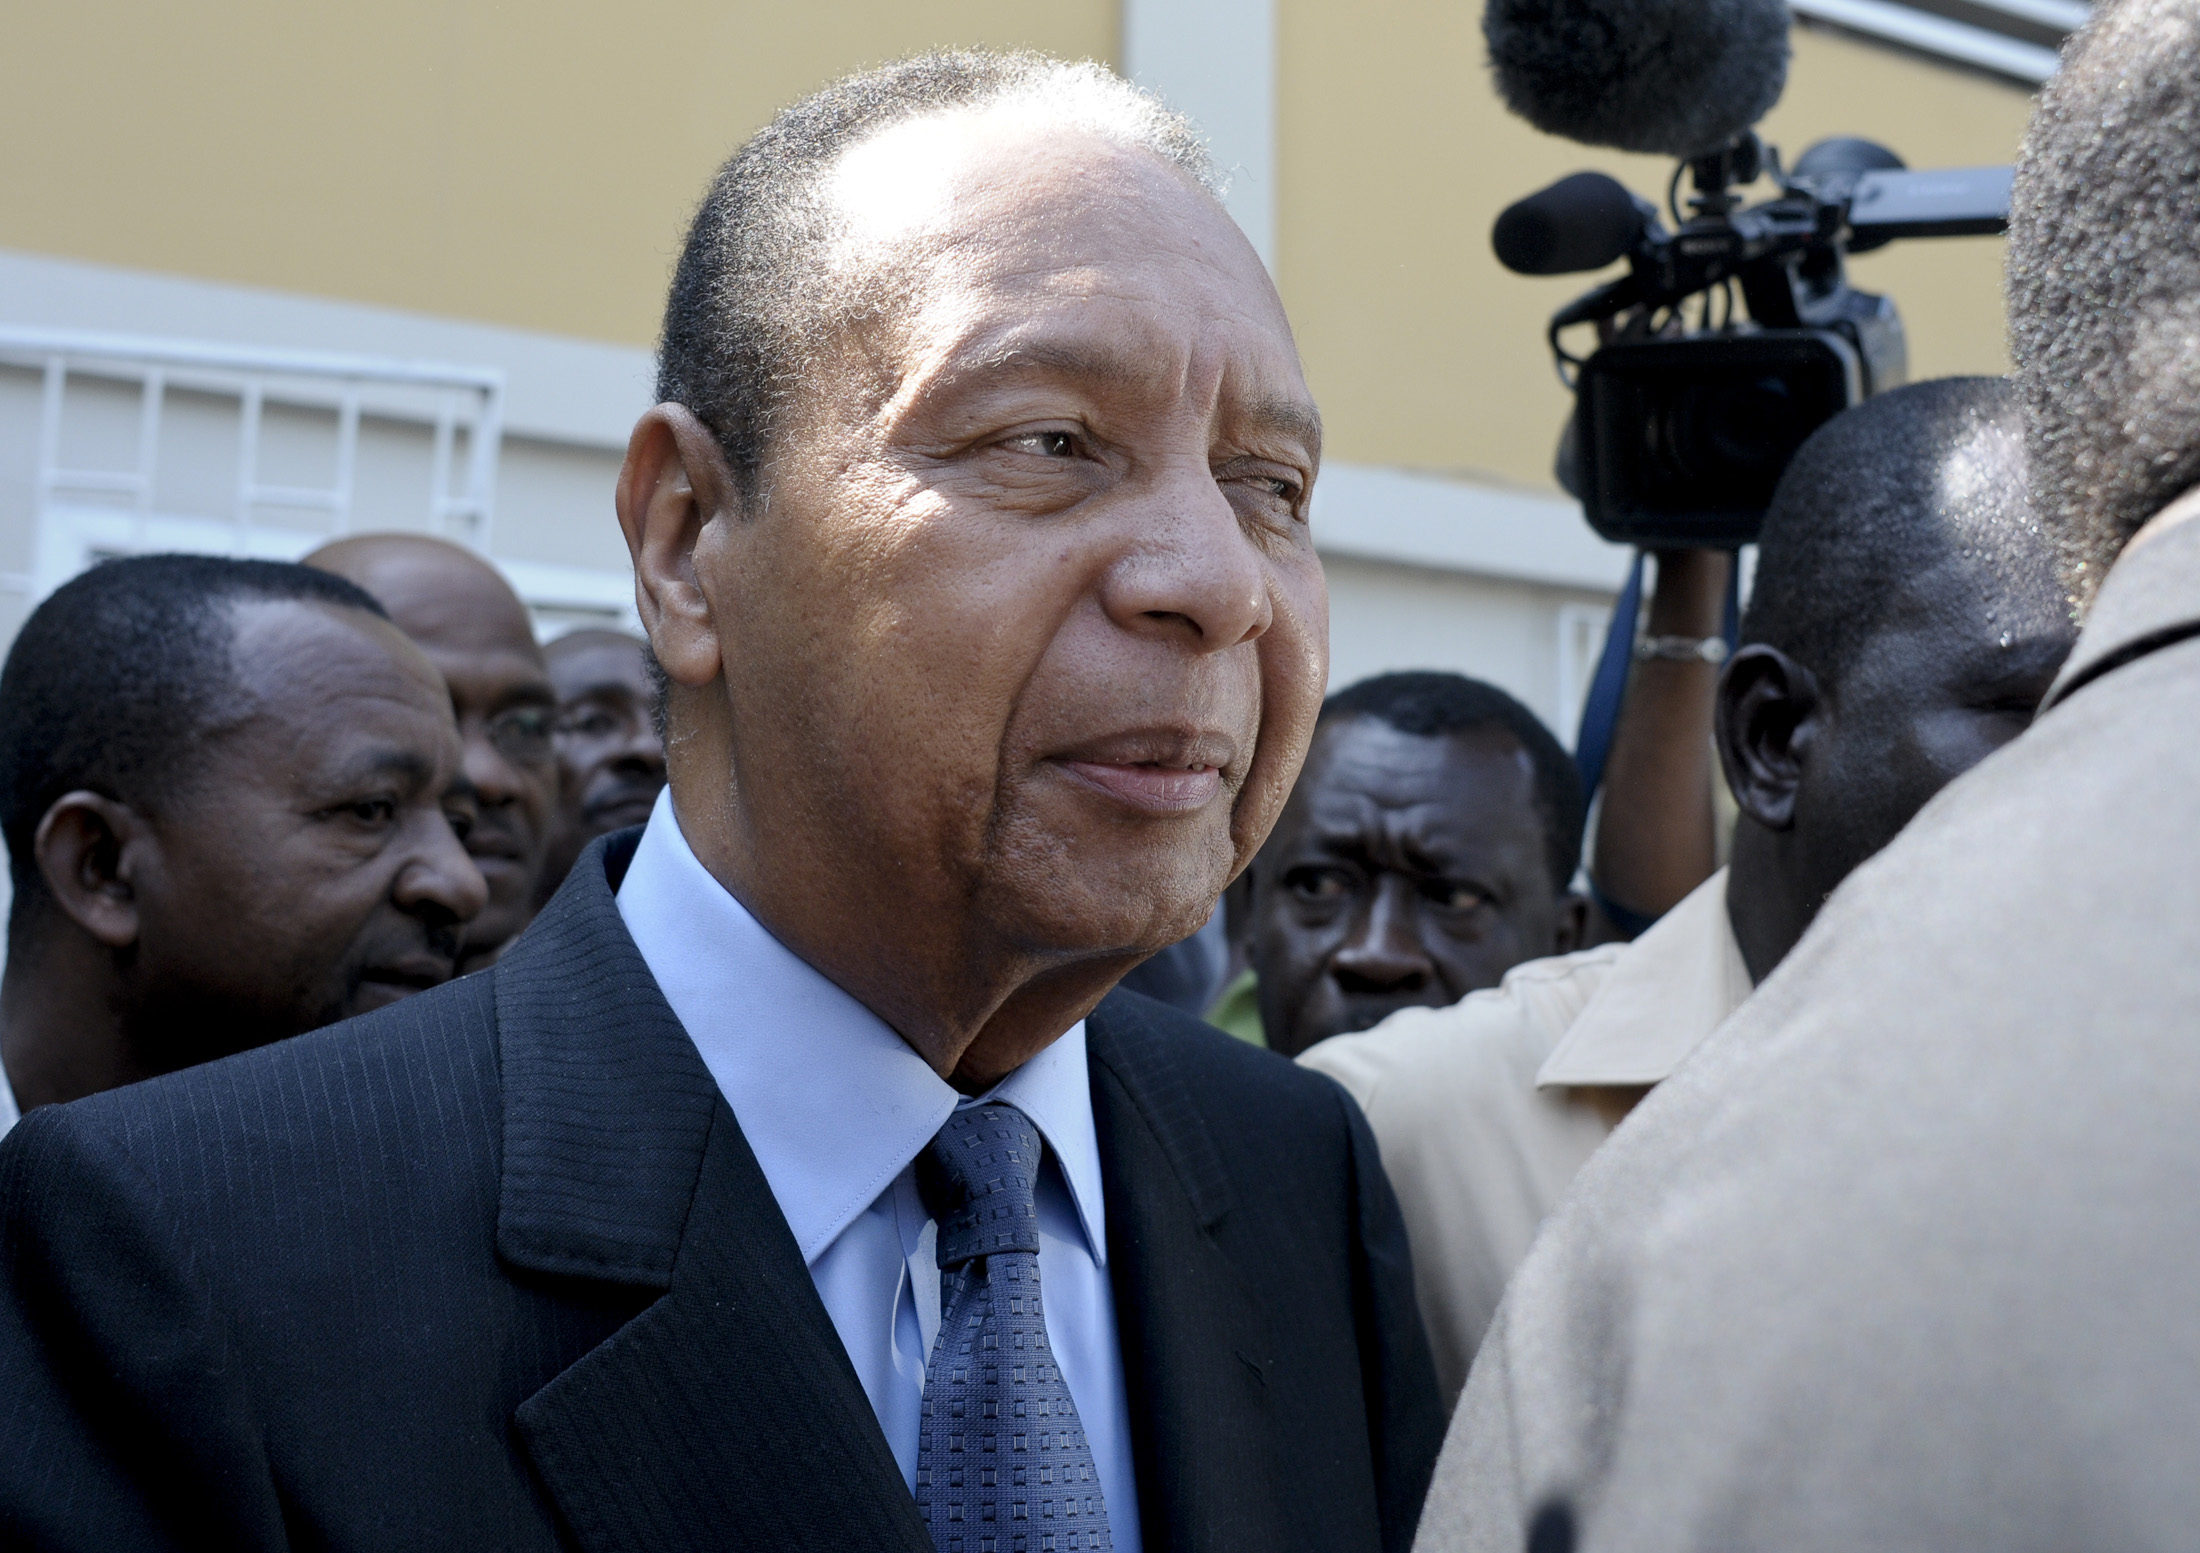 Concentration Camps List - Christine O Keeffe s Michele bennett duvalier pictures